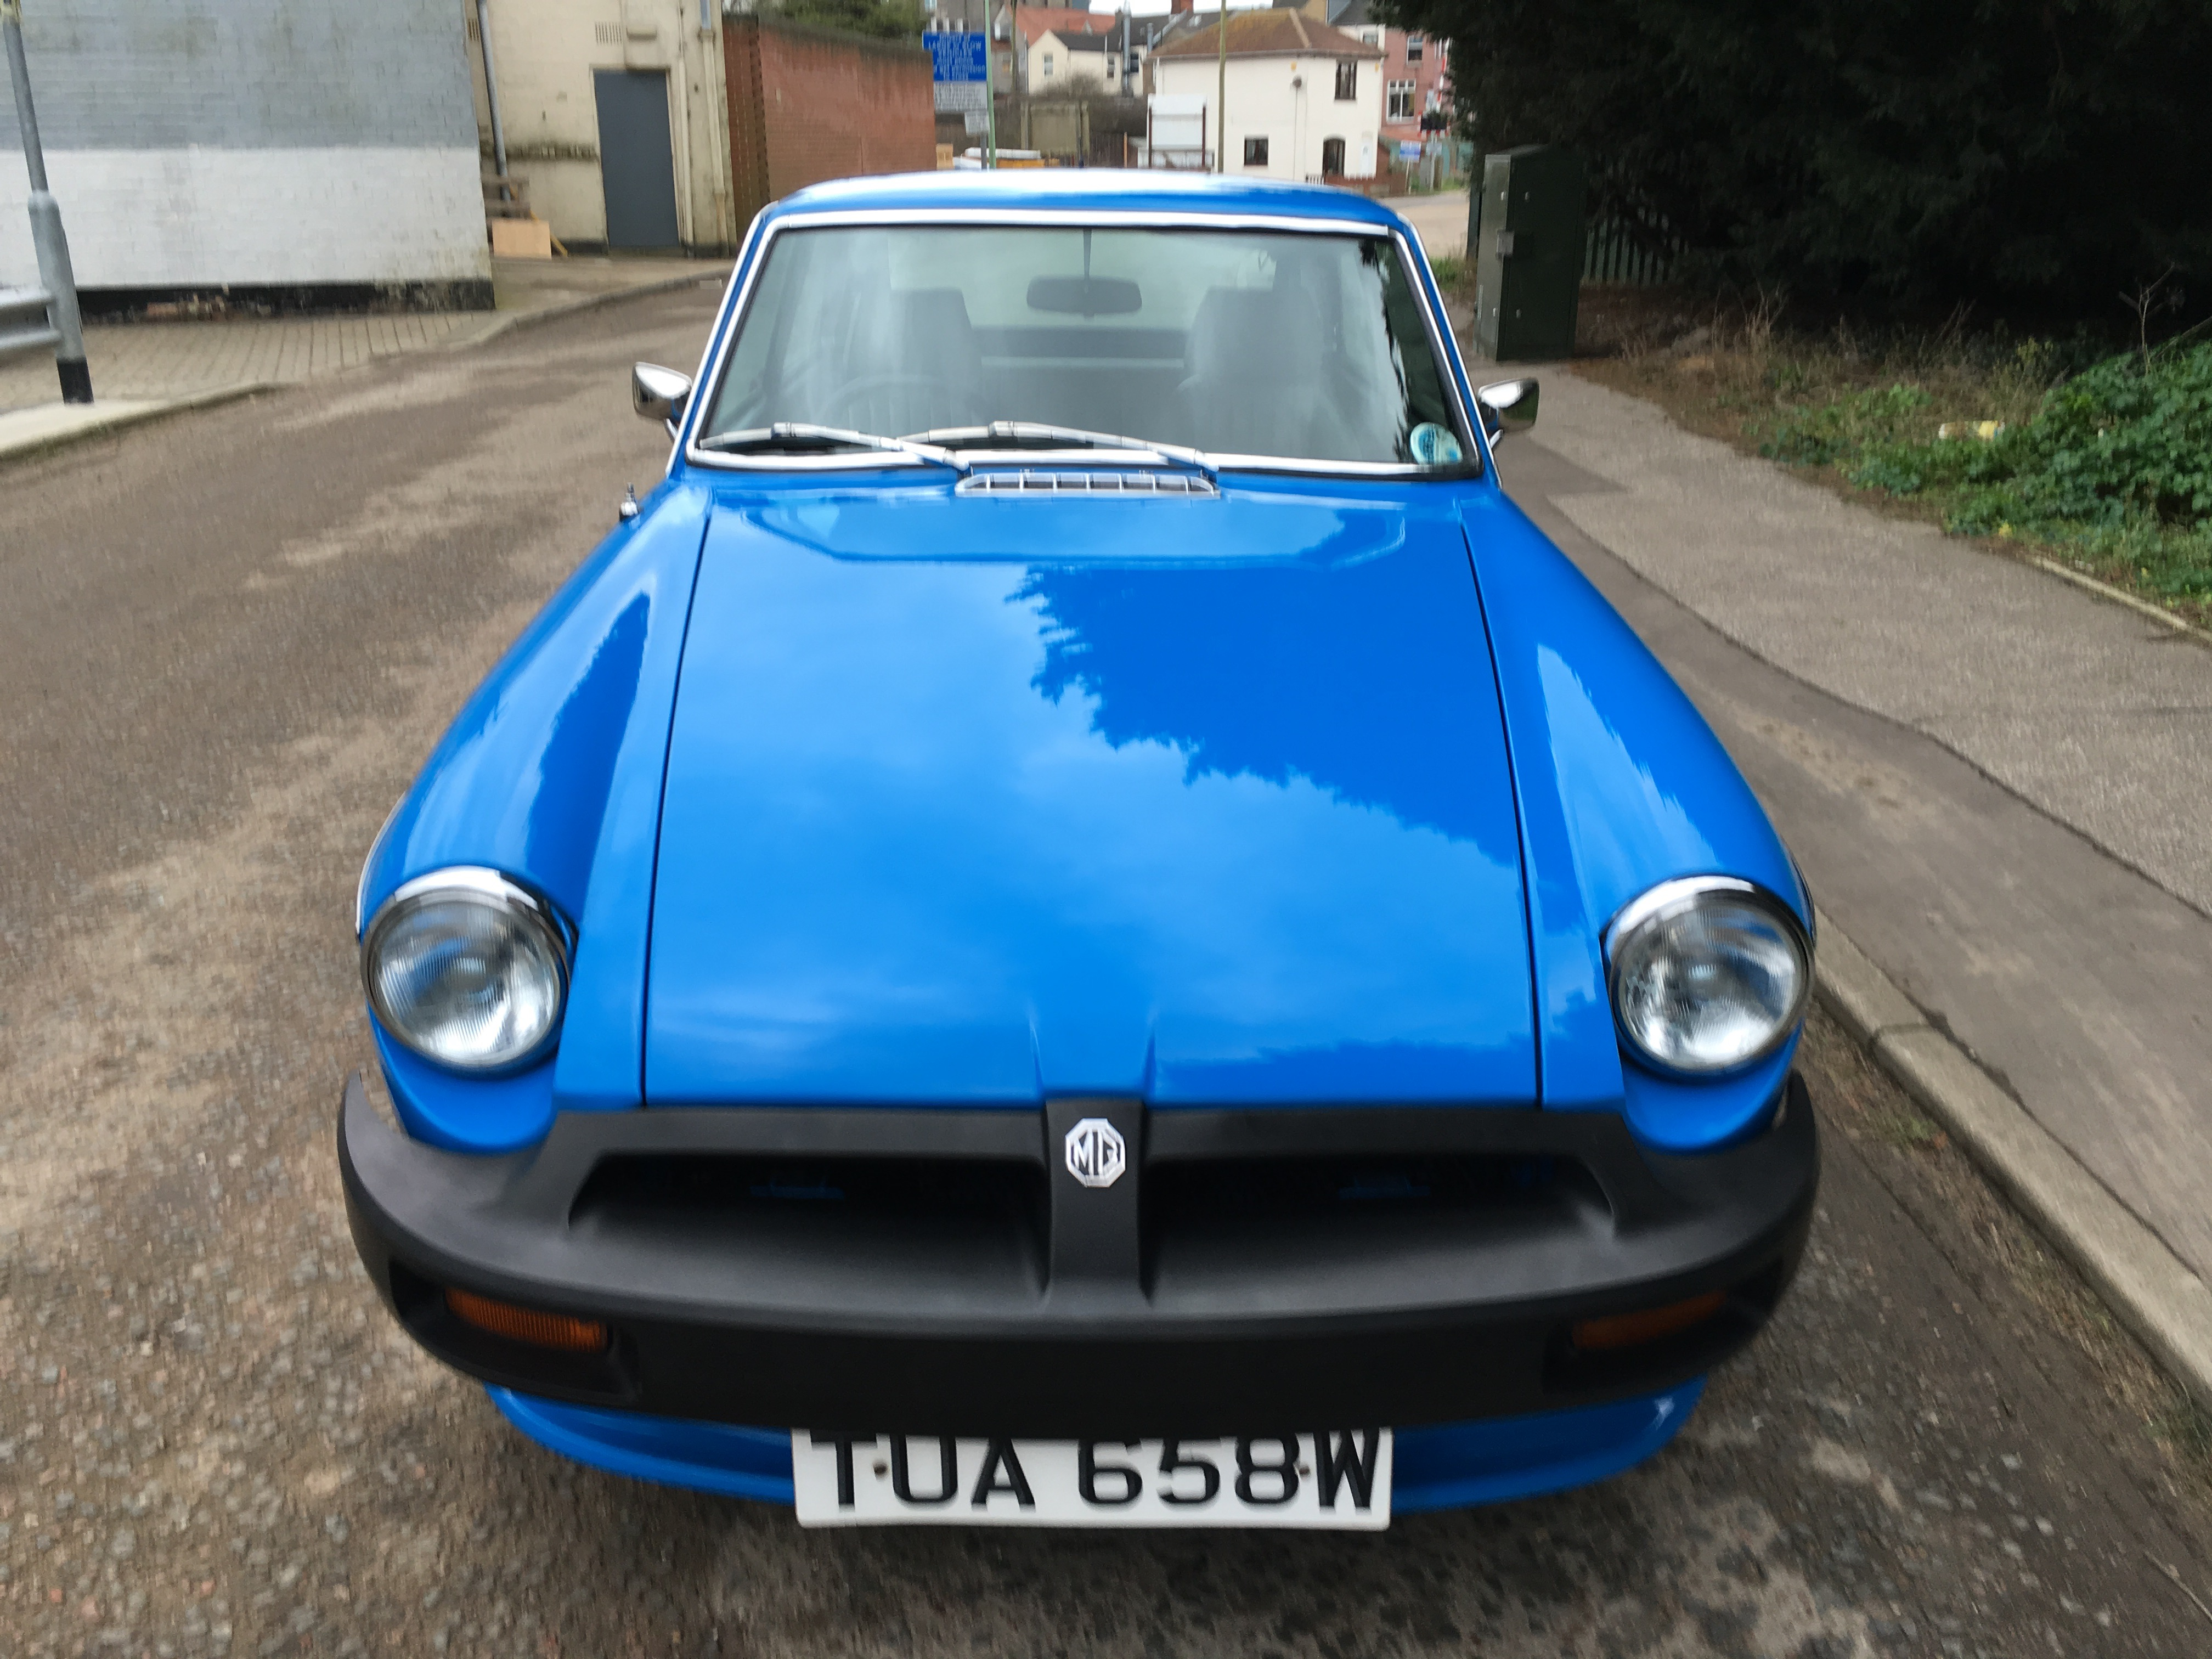 1981 Mg Bgt This 1981 Mg Bgt Has Been The Subject Of Years